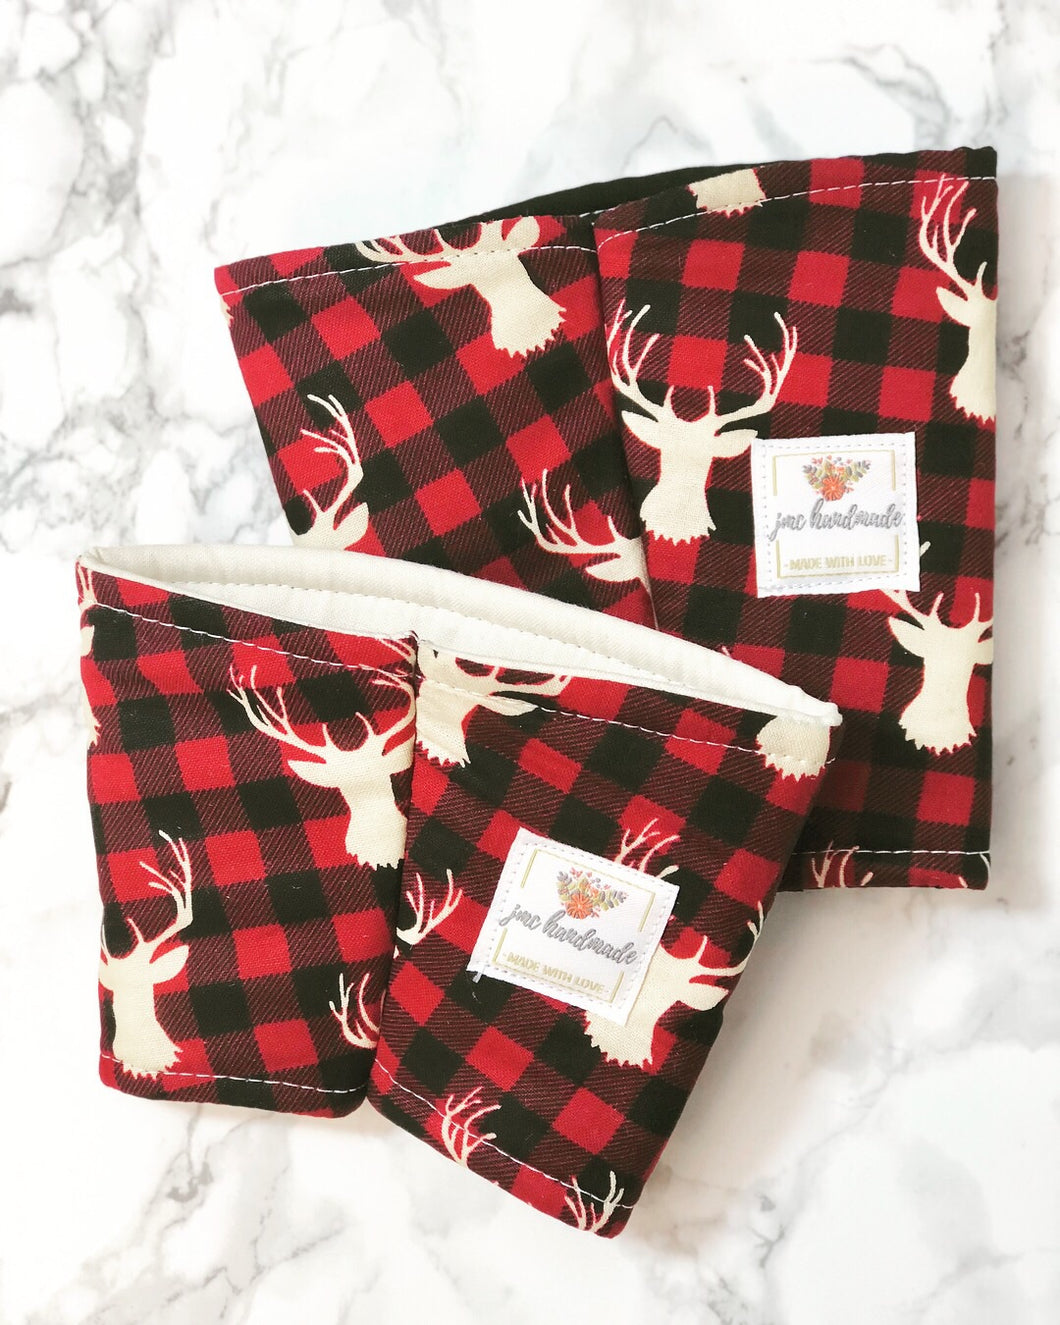 Buffalo Check Deer Print Iced Coffee Cozy. Drink Sleeve.